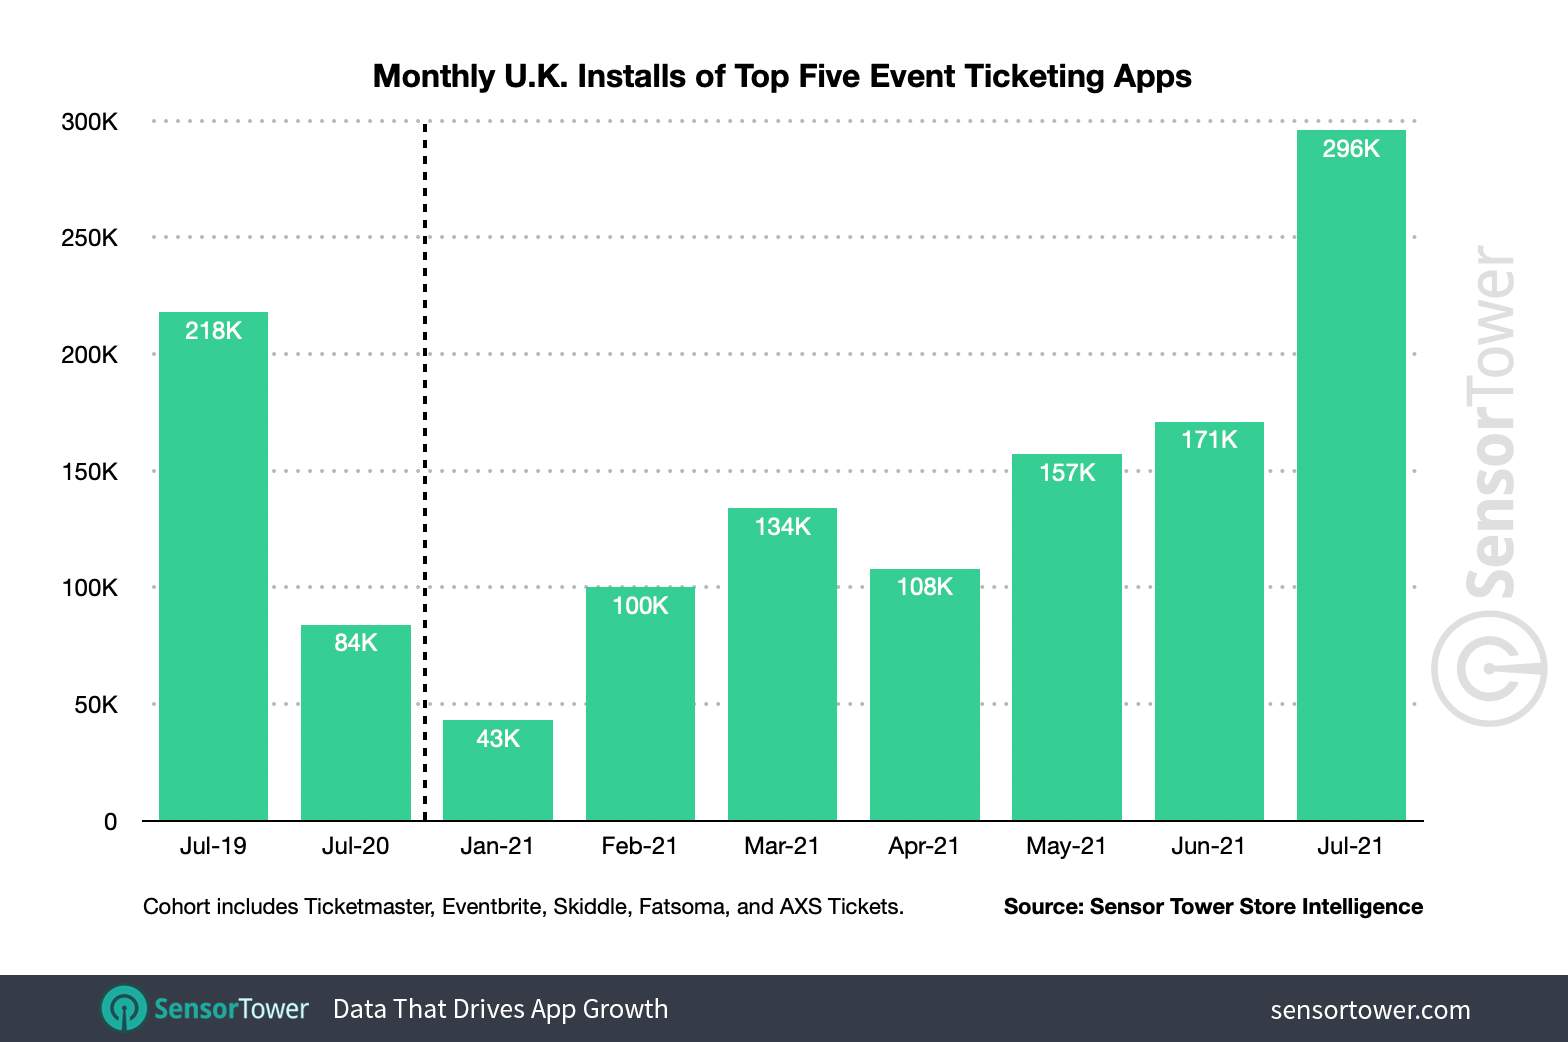 U.K. monthly installs of the top event ticketing apps